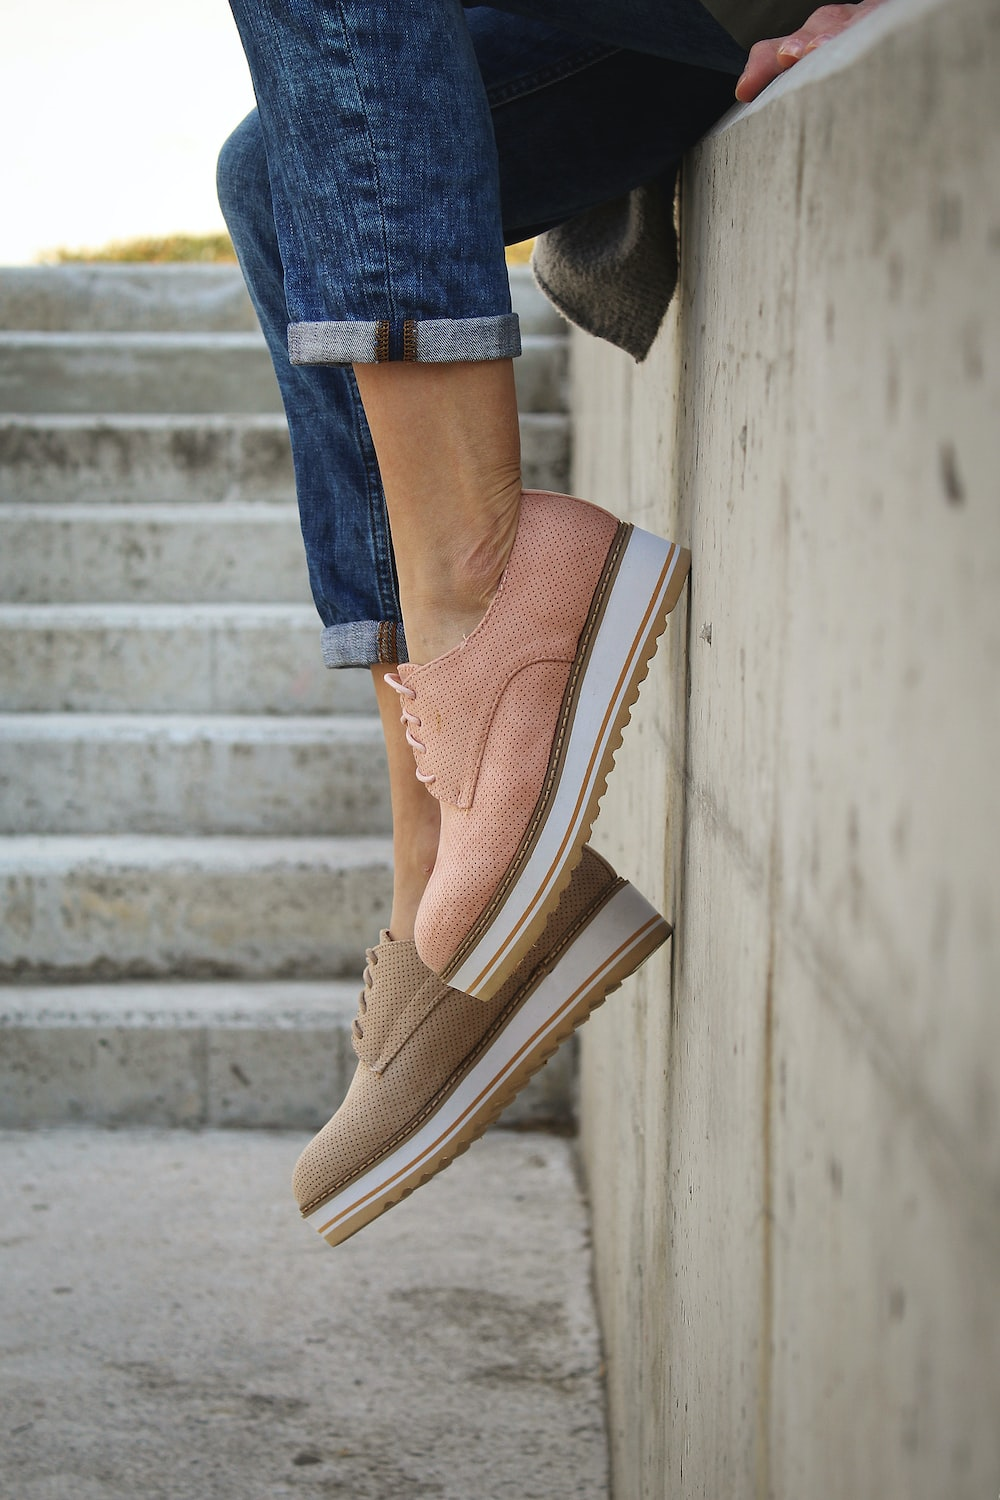 person wearing brown loafers